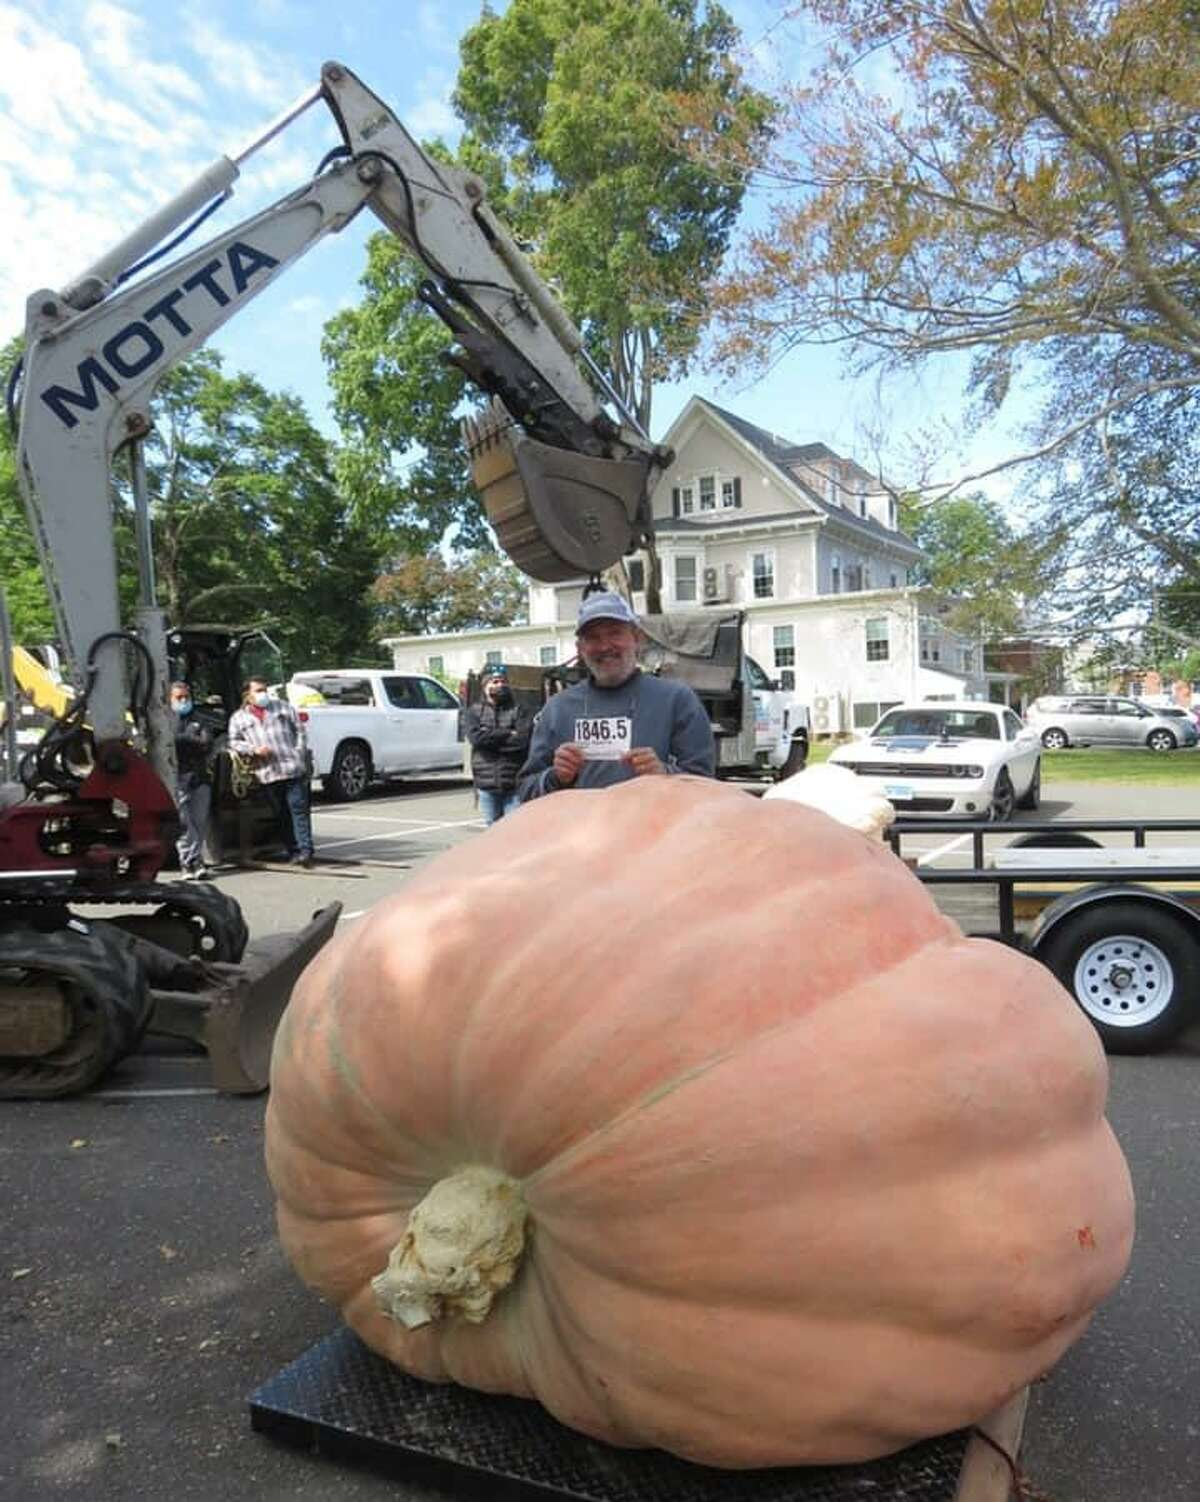 Steve Sperry's pumpkin weighing in at 1,846.5 lbs. came in second place.